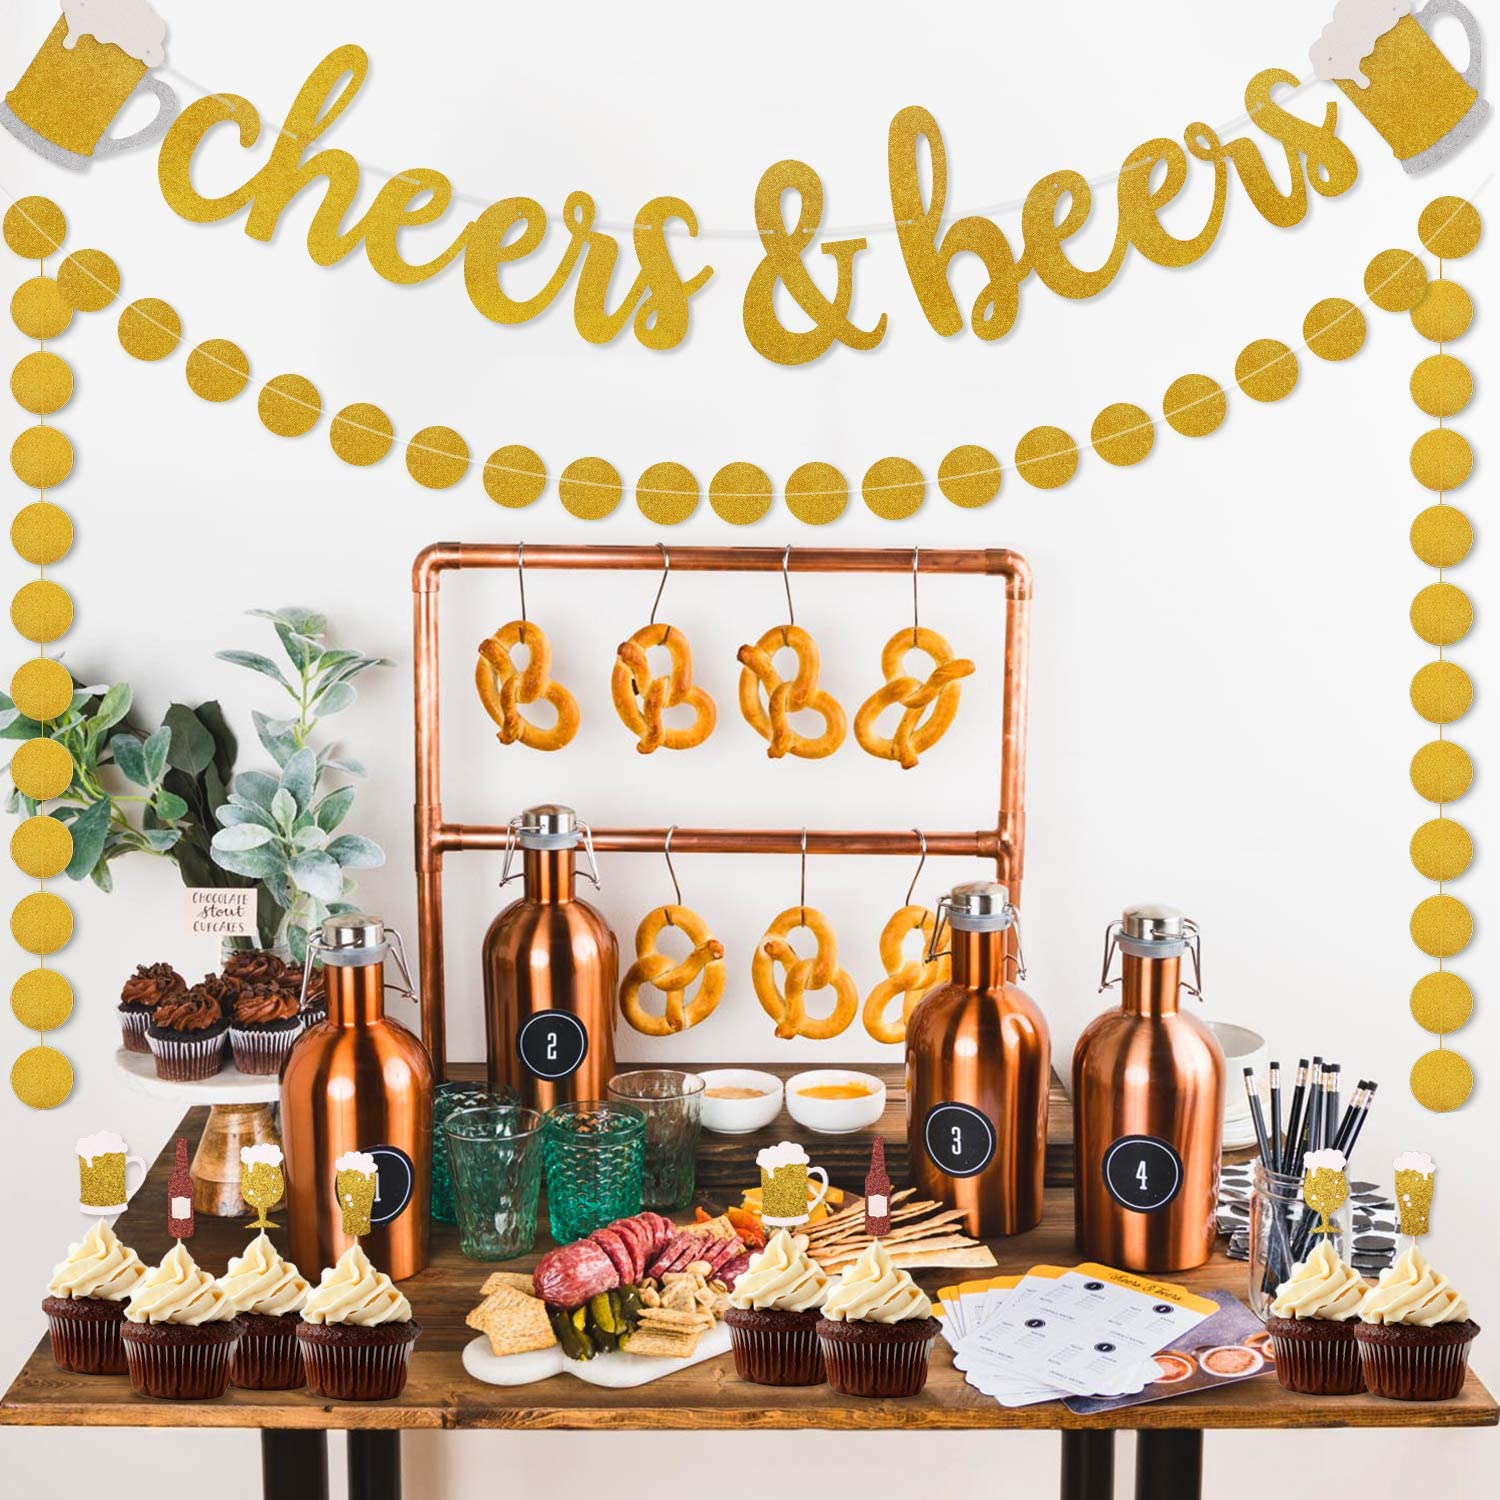 Cheers & Beers Banner Decorations, Gold Glitter Dots Garland for Birthday Wedding Anniversary Graduation Bachelorette Bridal Shower Engagement, Beer Mug Stein Party Supplies Pre Strung & Ready To Hang